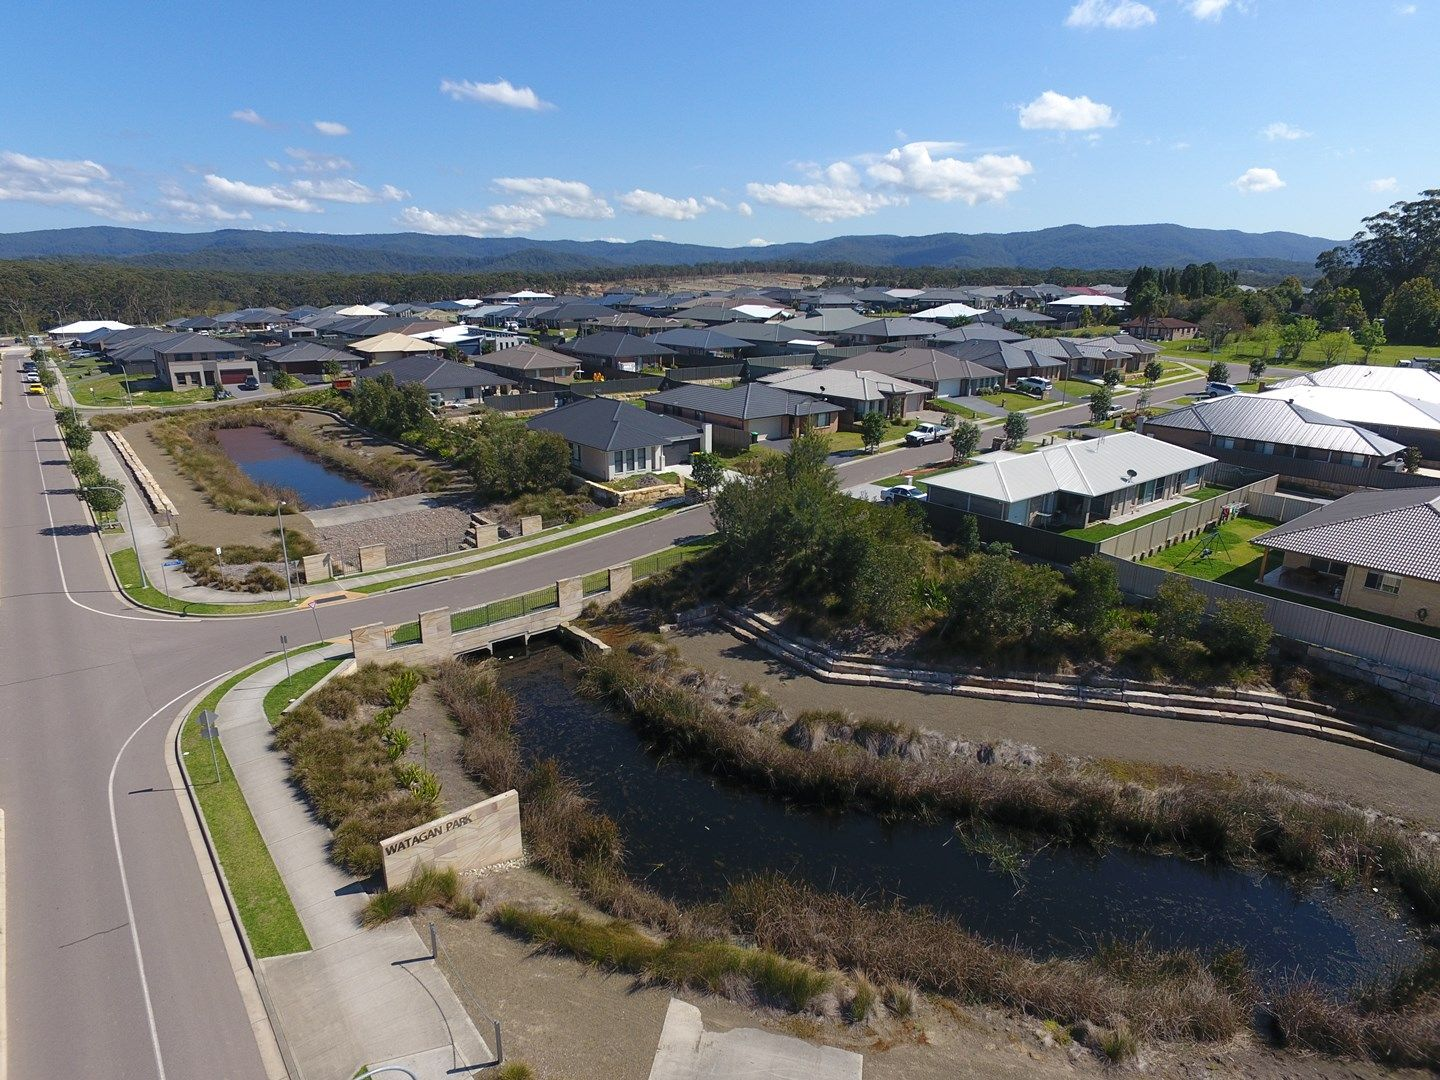 Lot 1225 McDowell Street, Cooranbong NSW 2265, Image 0